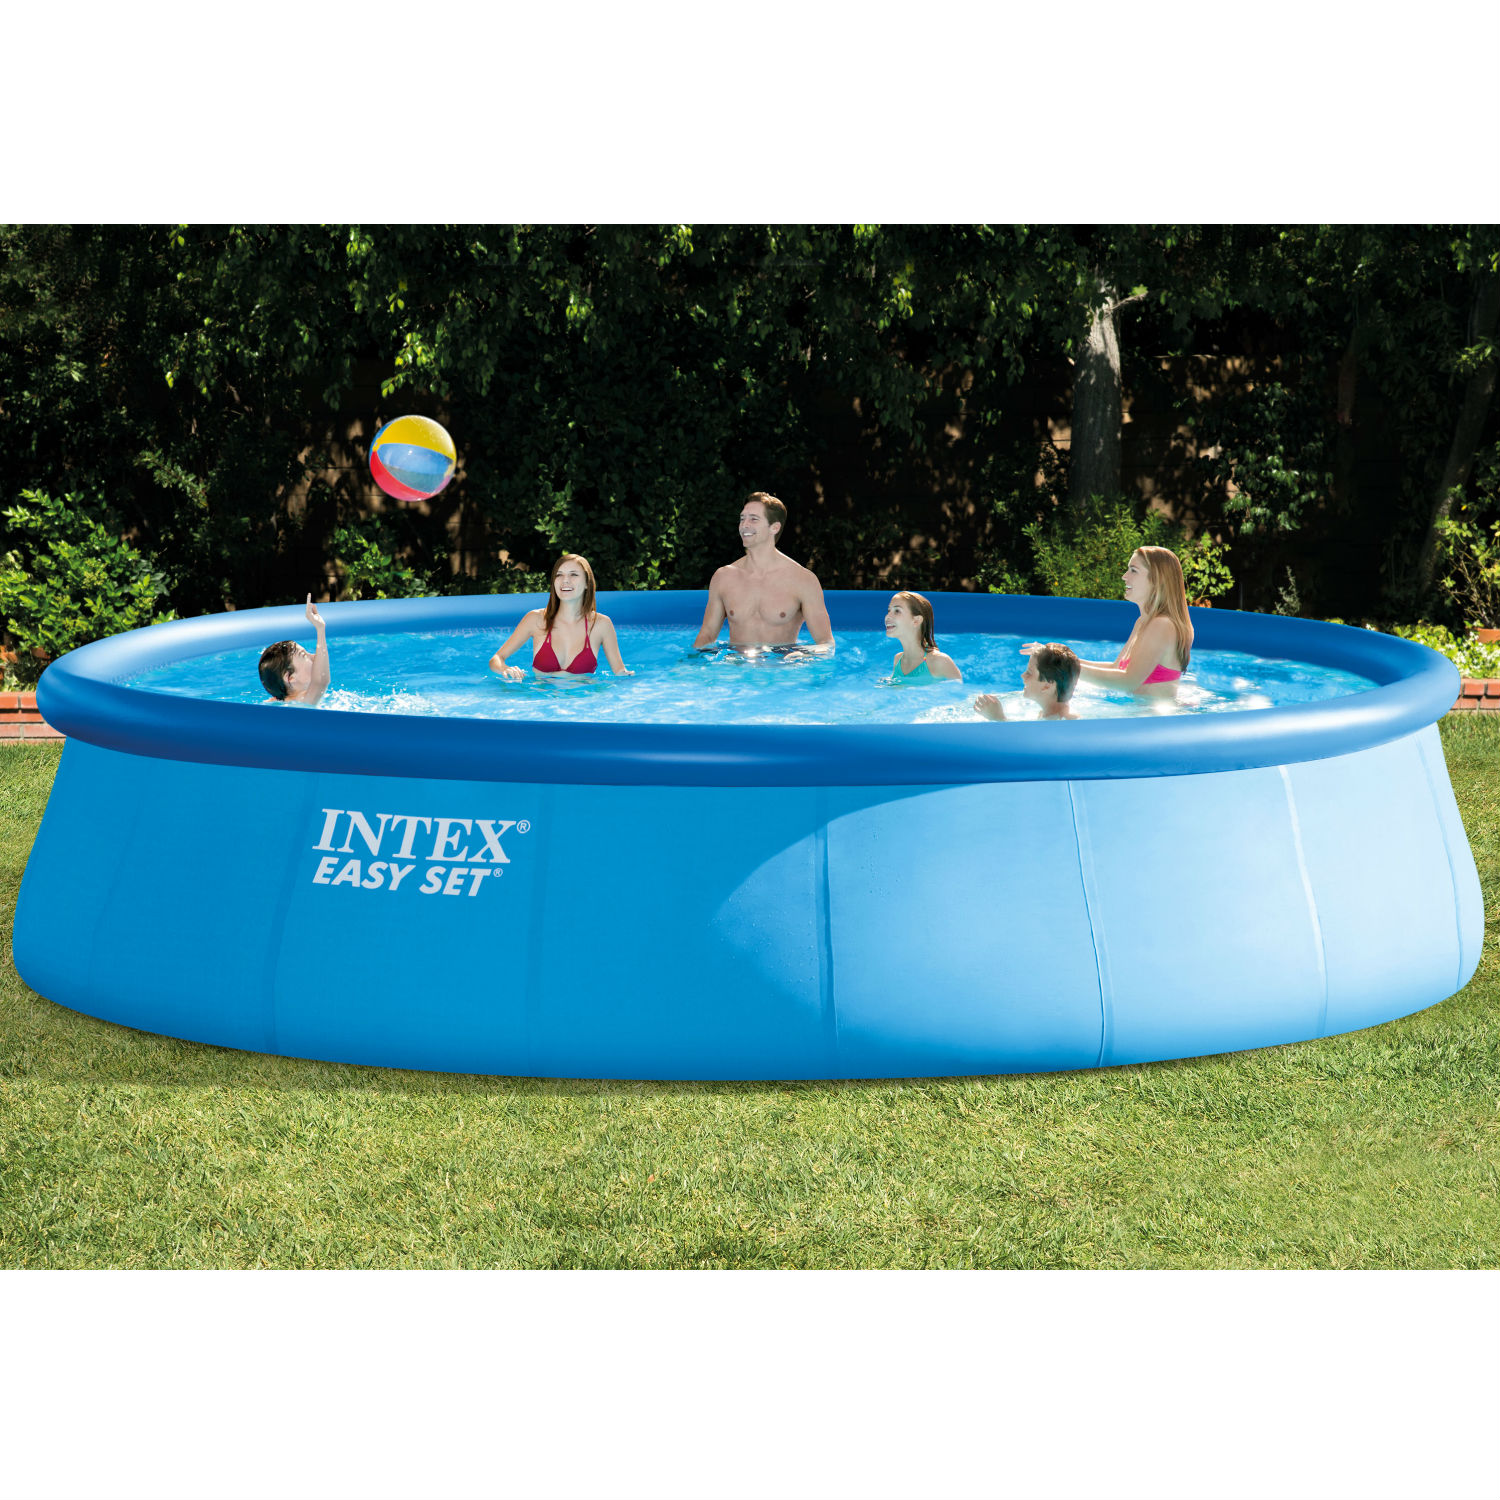 "Intex 18' x 48"" Easy Set Above Ground Swimming Pool with Filter Pump"